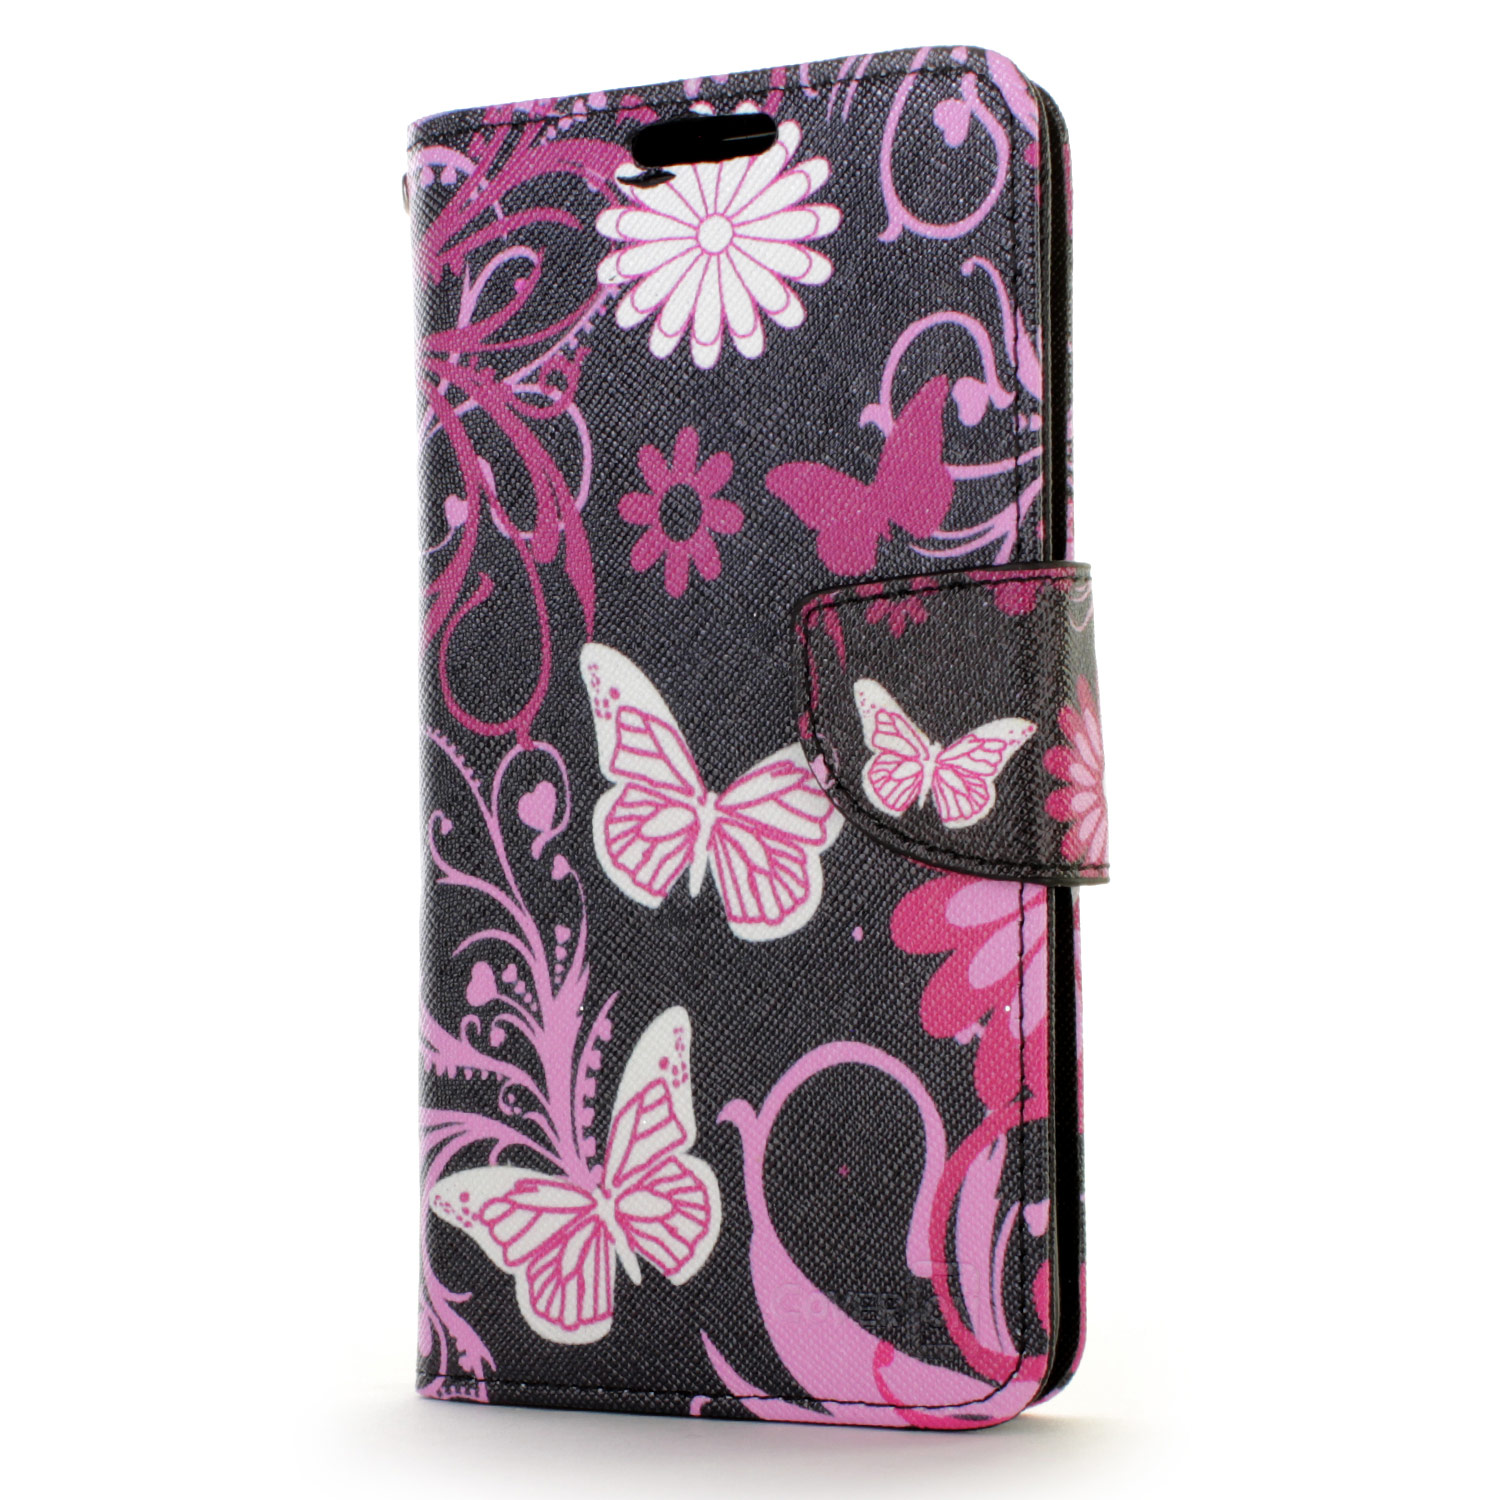 Image Is Loading Pink Erfly Design Wallet Pouch Cover Case For